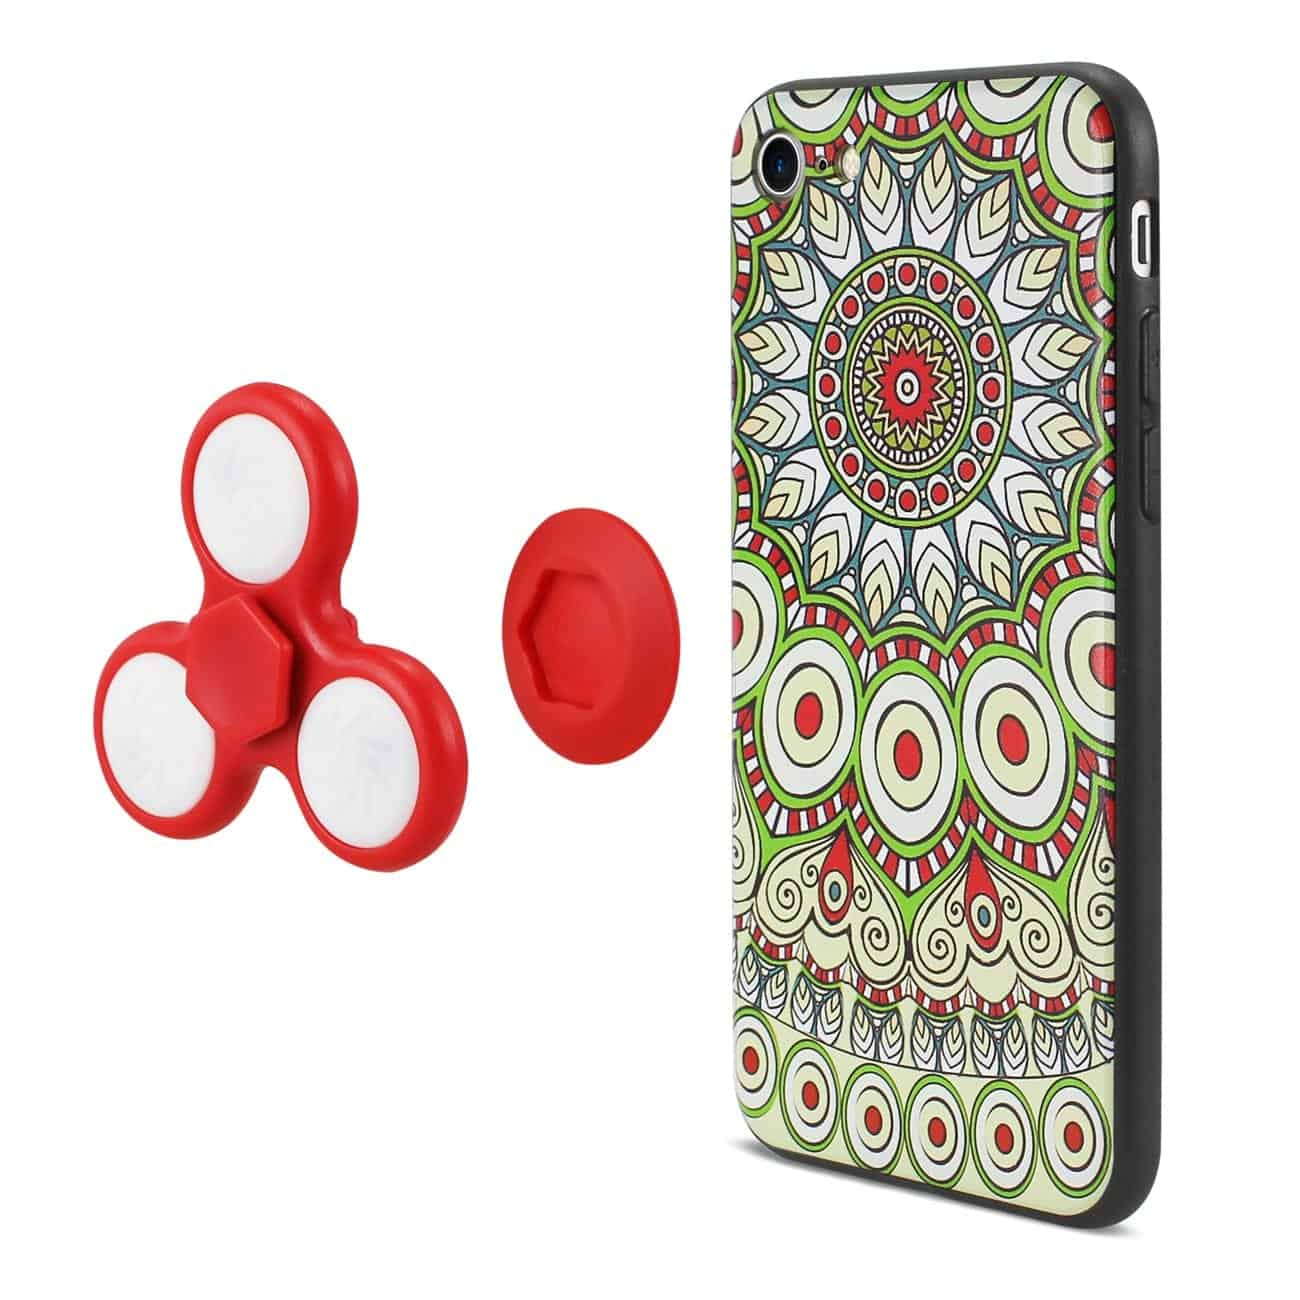 DESIGN THE INSPIRATION OF PEACOCK IPHONE 7/ 6/ 6S CASE WITH LED FIDGET SPINNER CLIP ON IN BEIGE